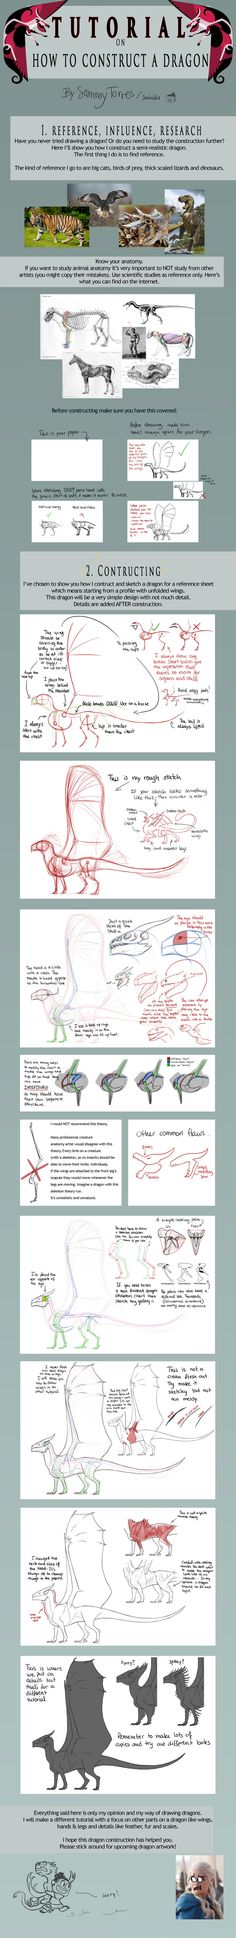 TUTORIAL: How to Construct a Dragon by SammyTorres.deviantart.com on @DeviantArt